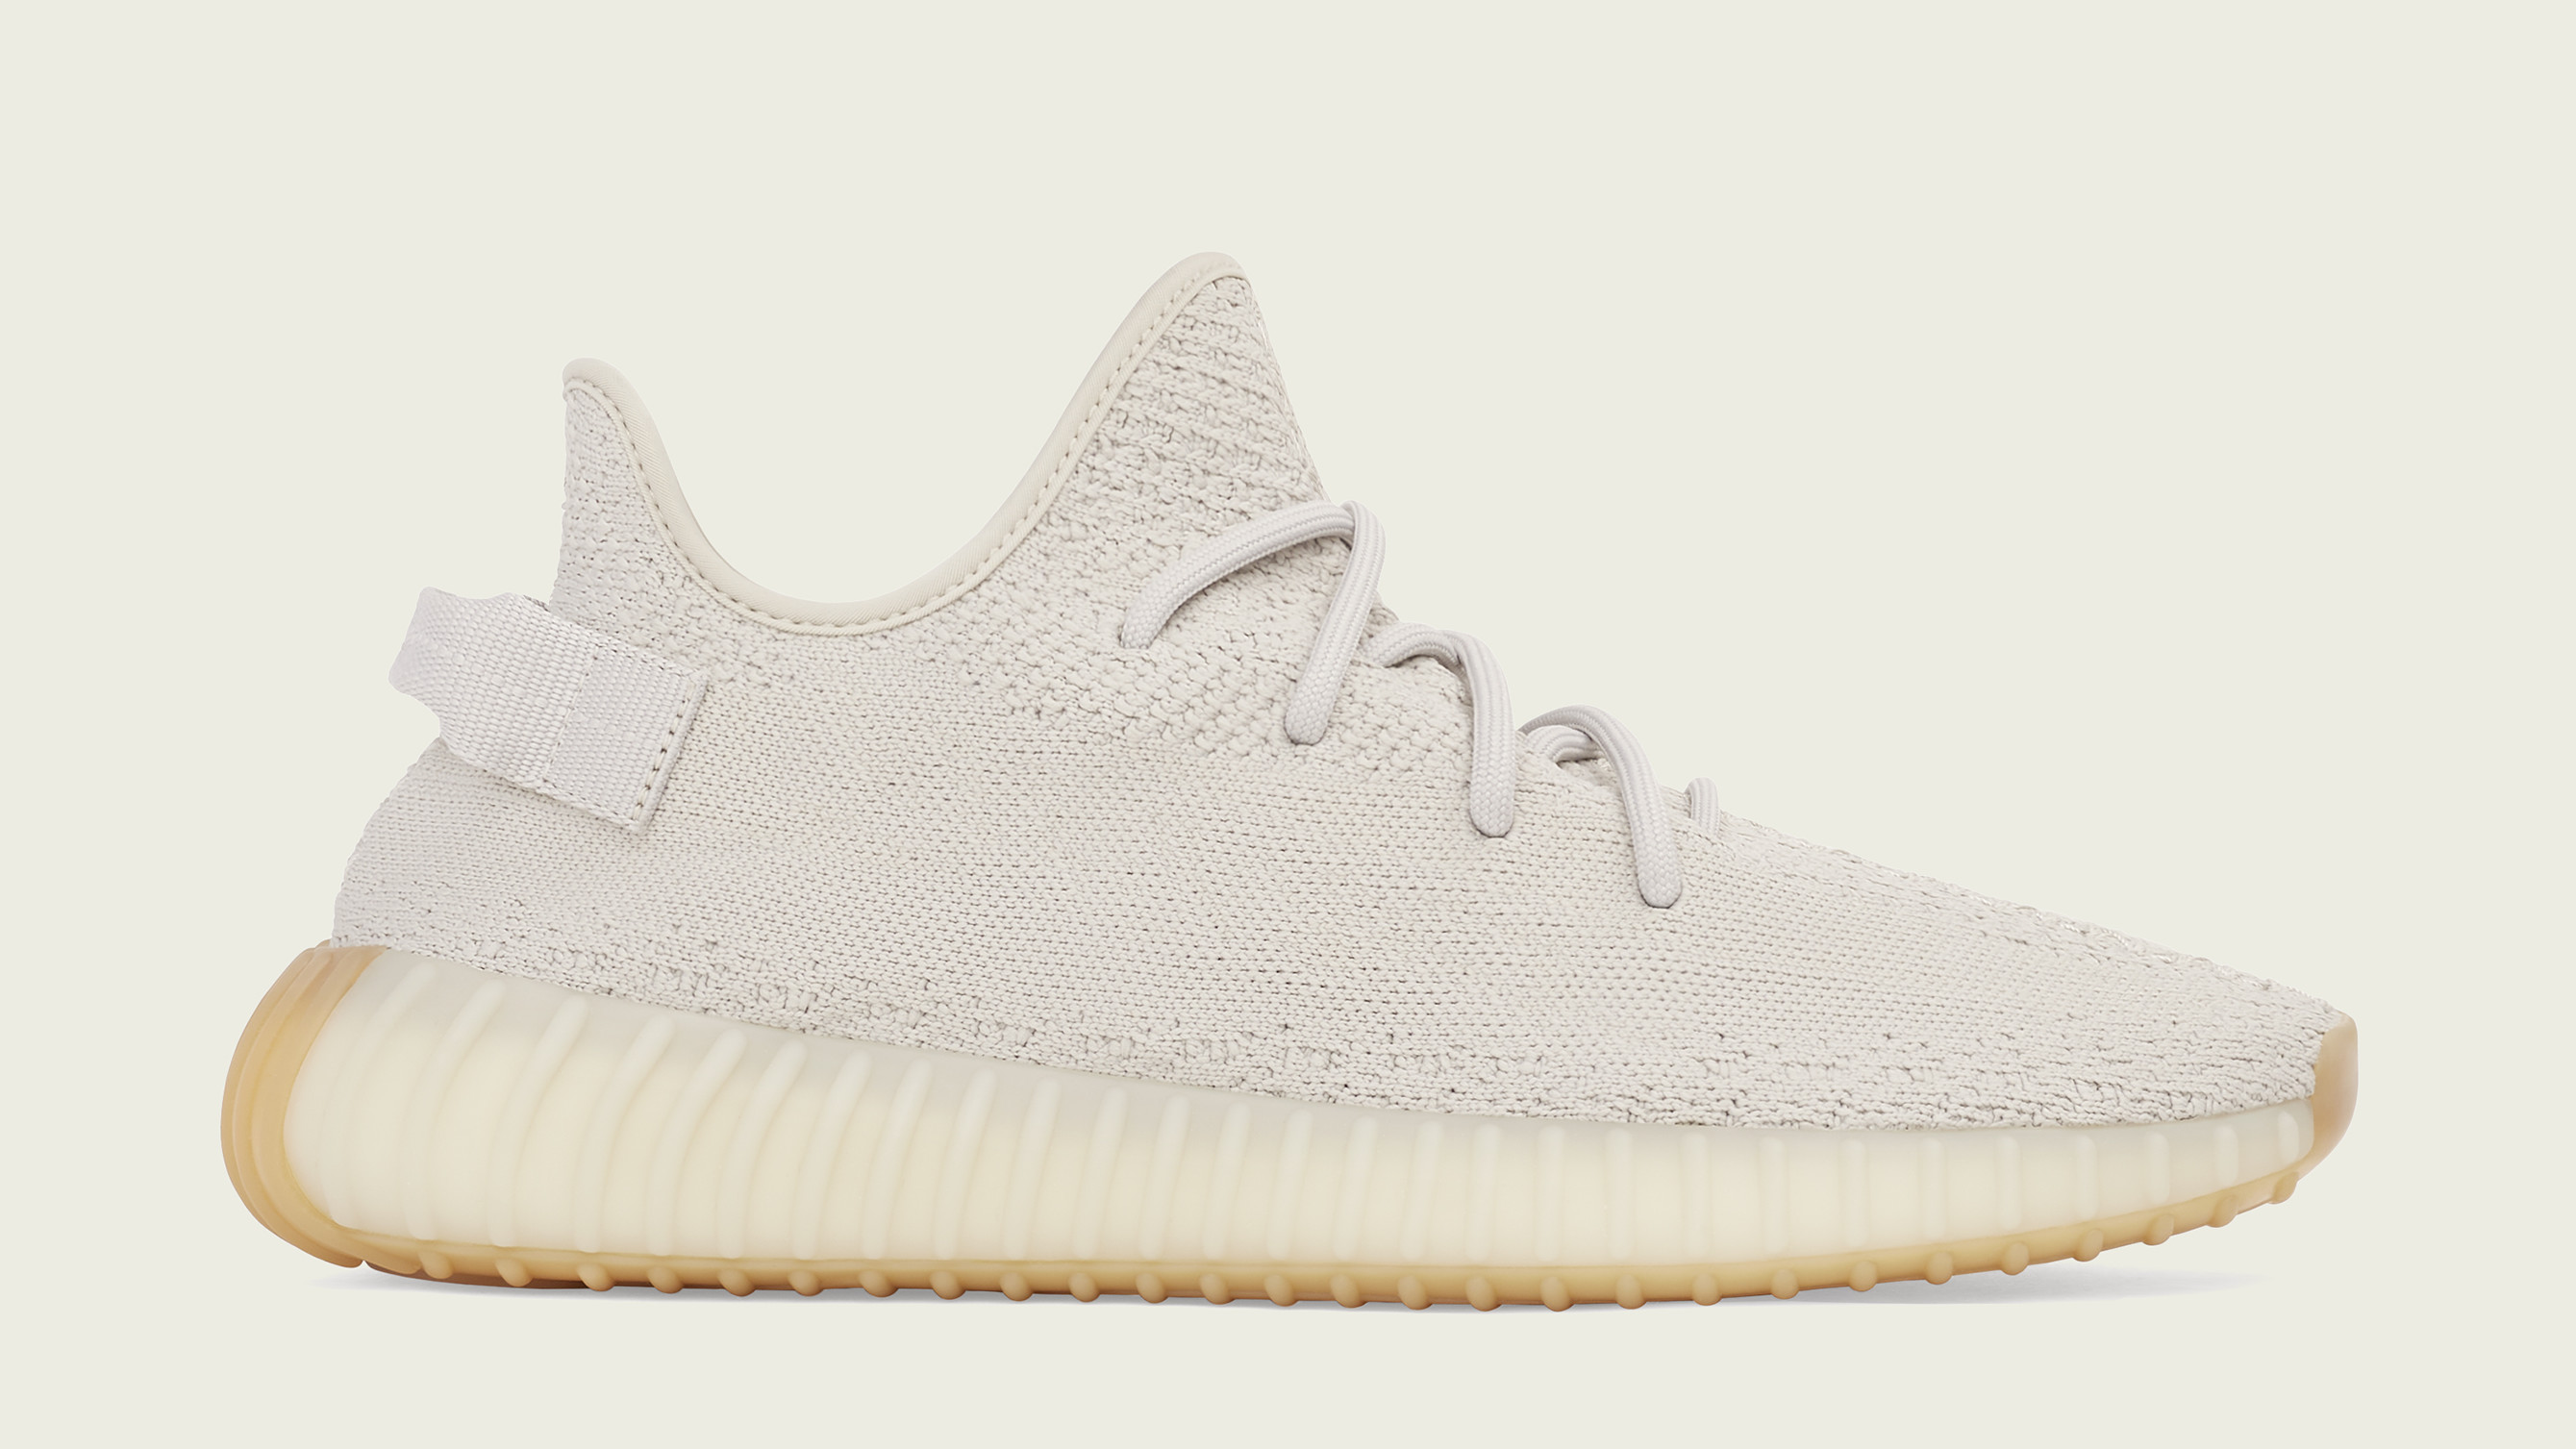 dee14c2fd4b28a Adidas Confirms Release Date for the  Sesame  Yeezy Boost 350 V2